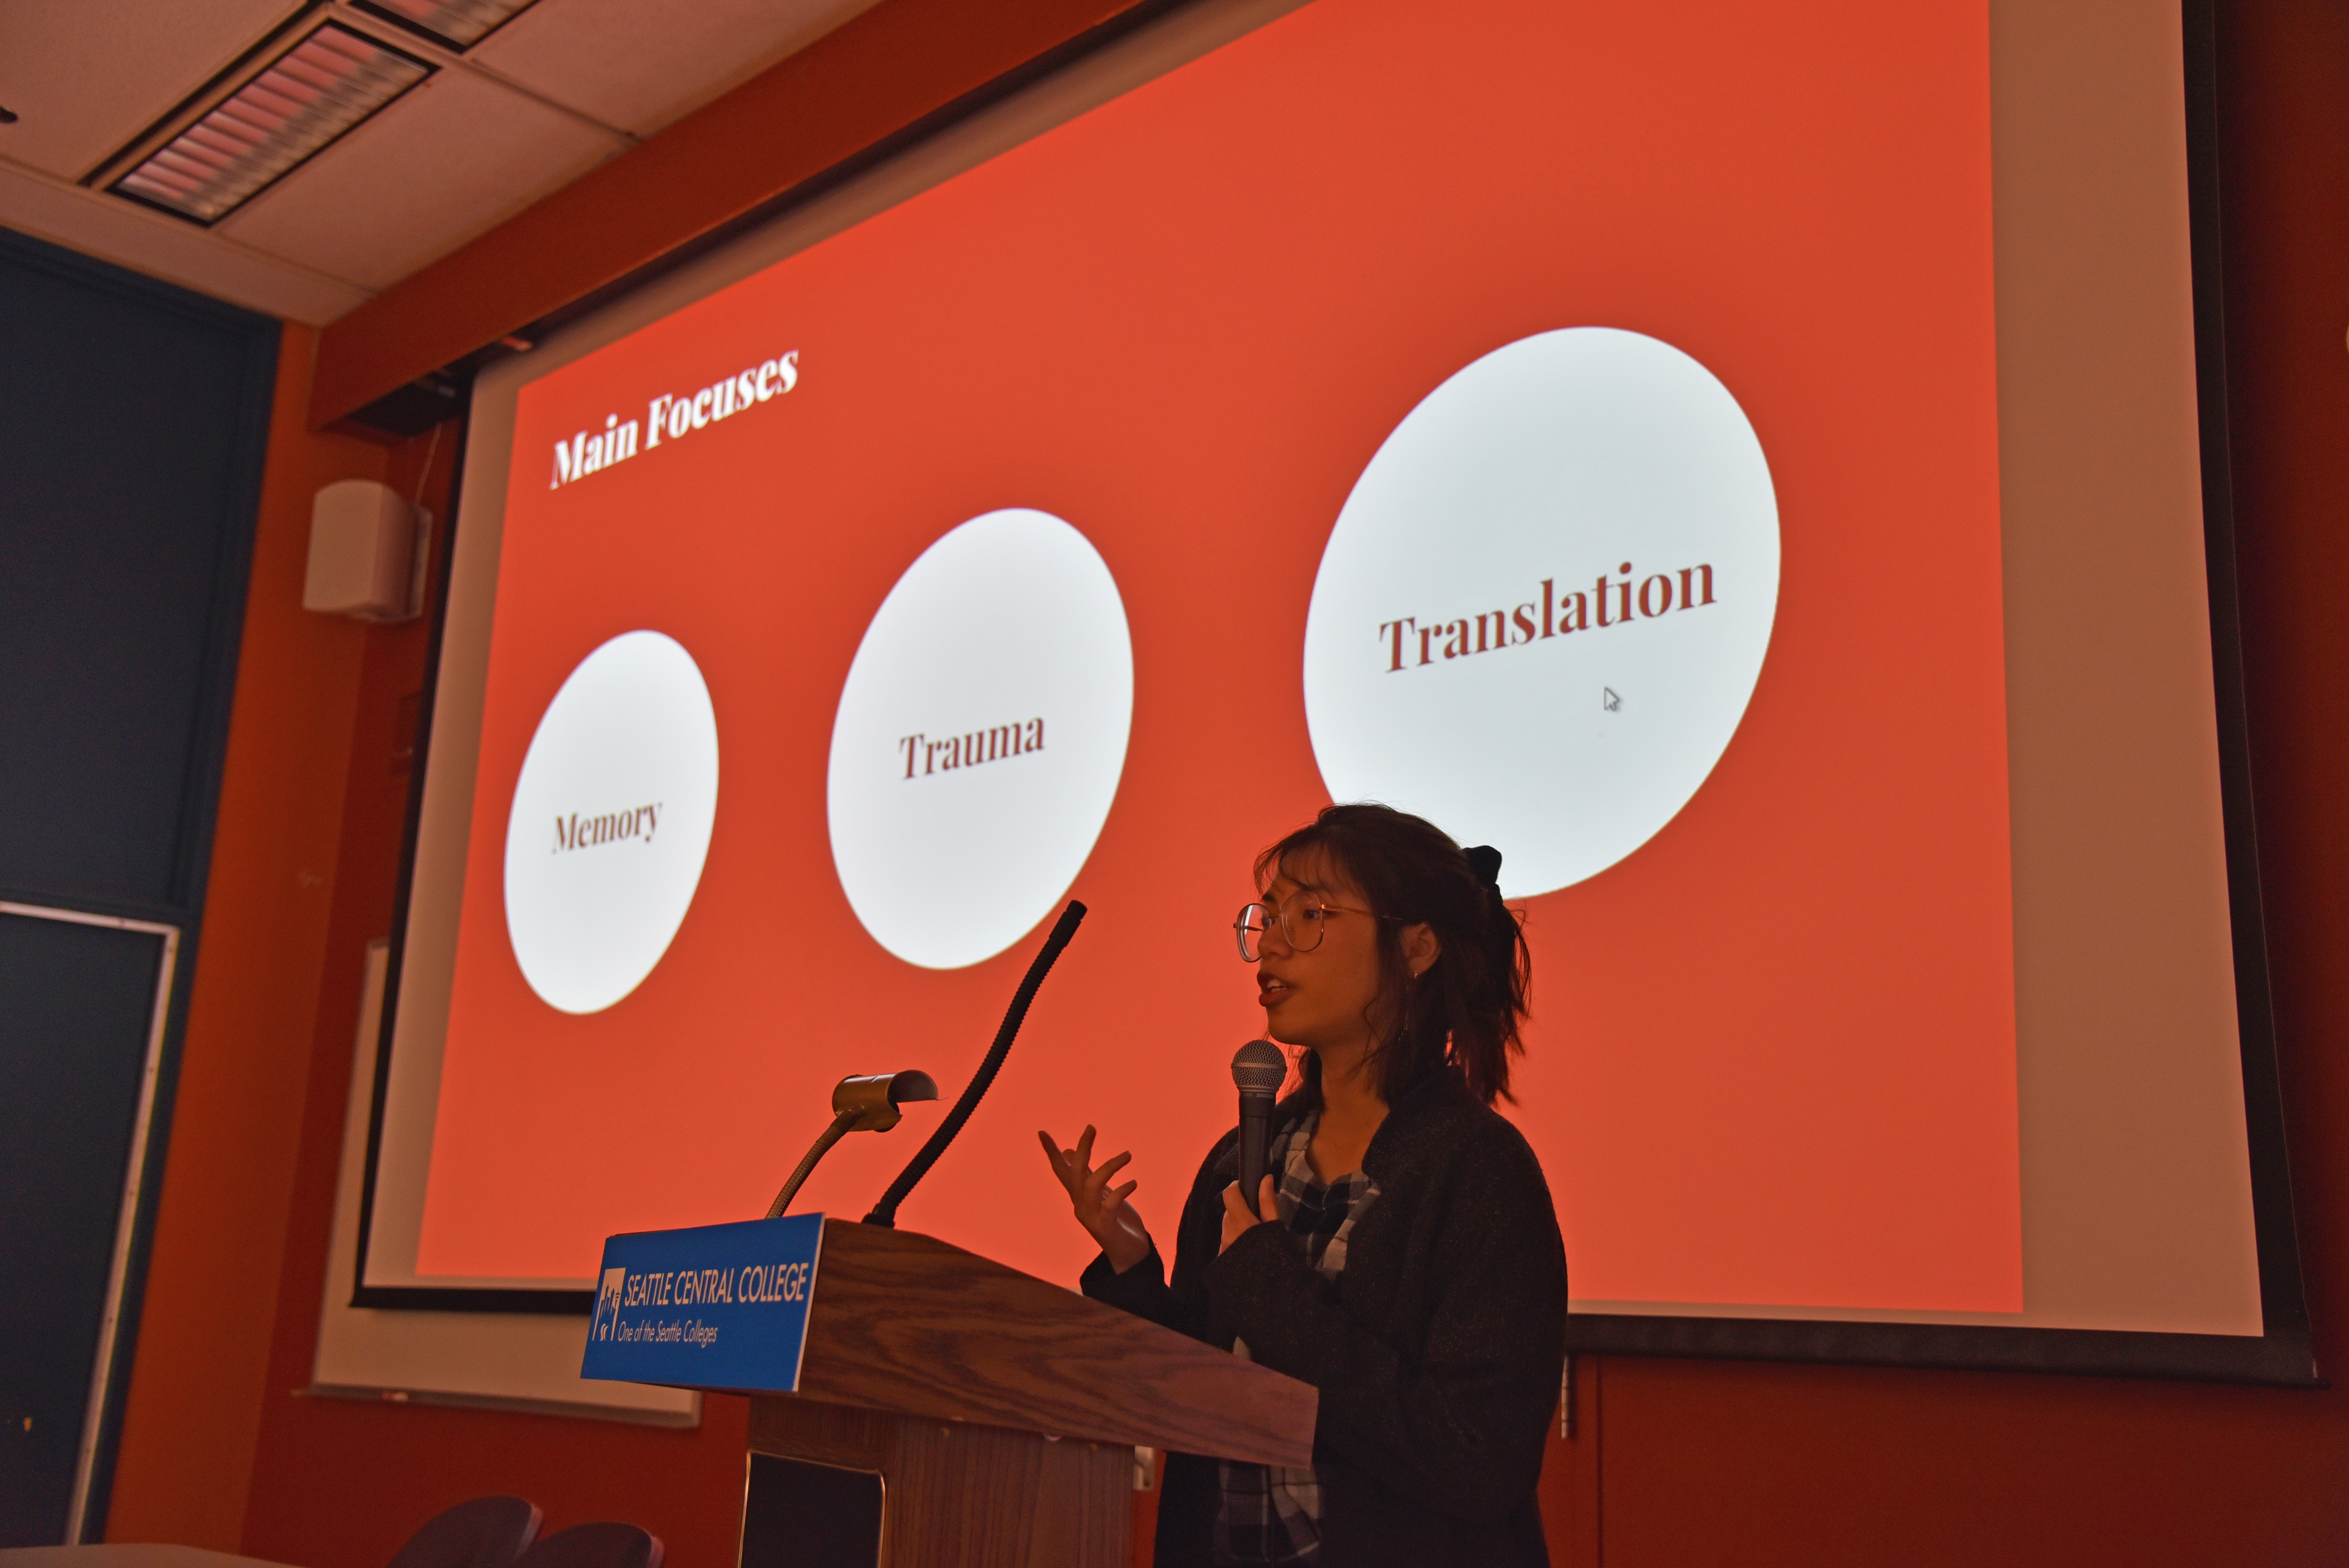 A presenter discusses her proposed CHID project. The screen behind her is in red, with three bubbles featuring the words memory, trauma, translation